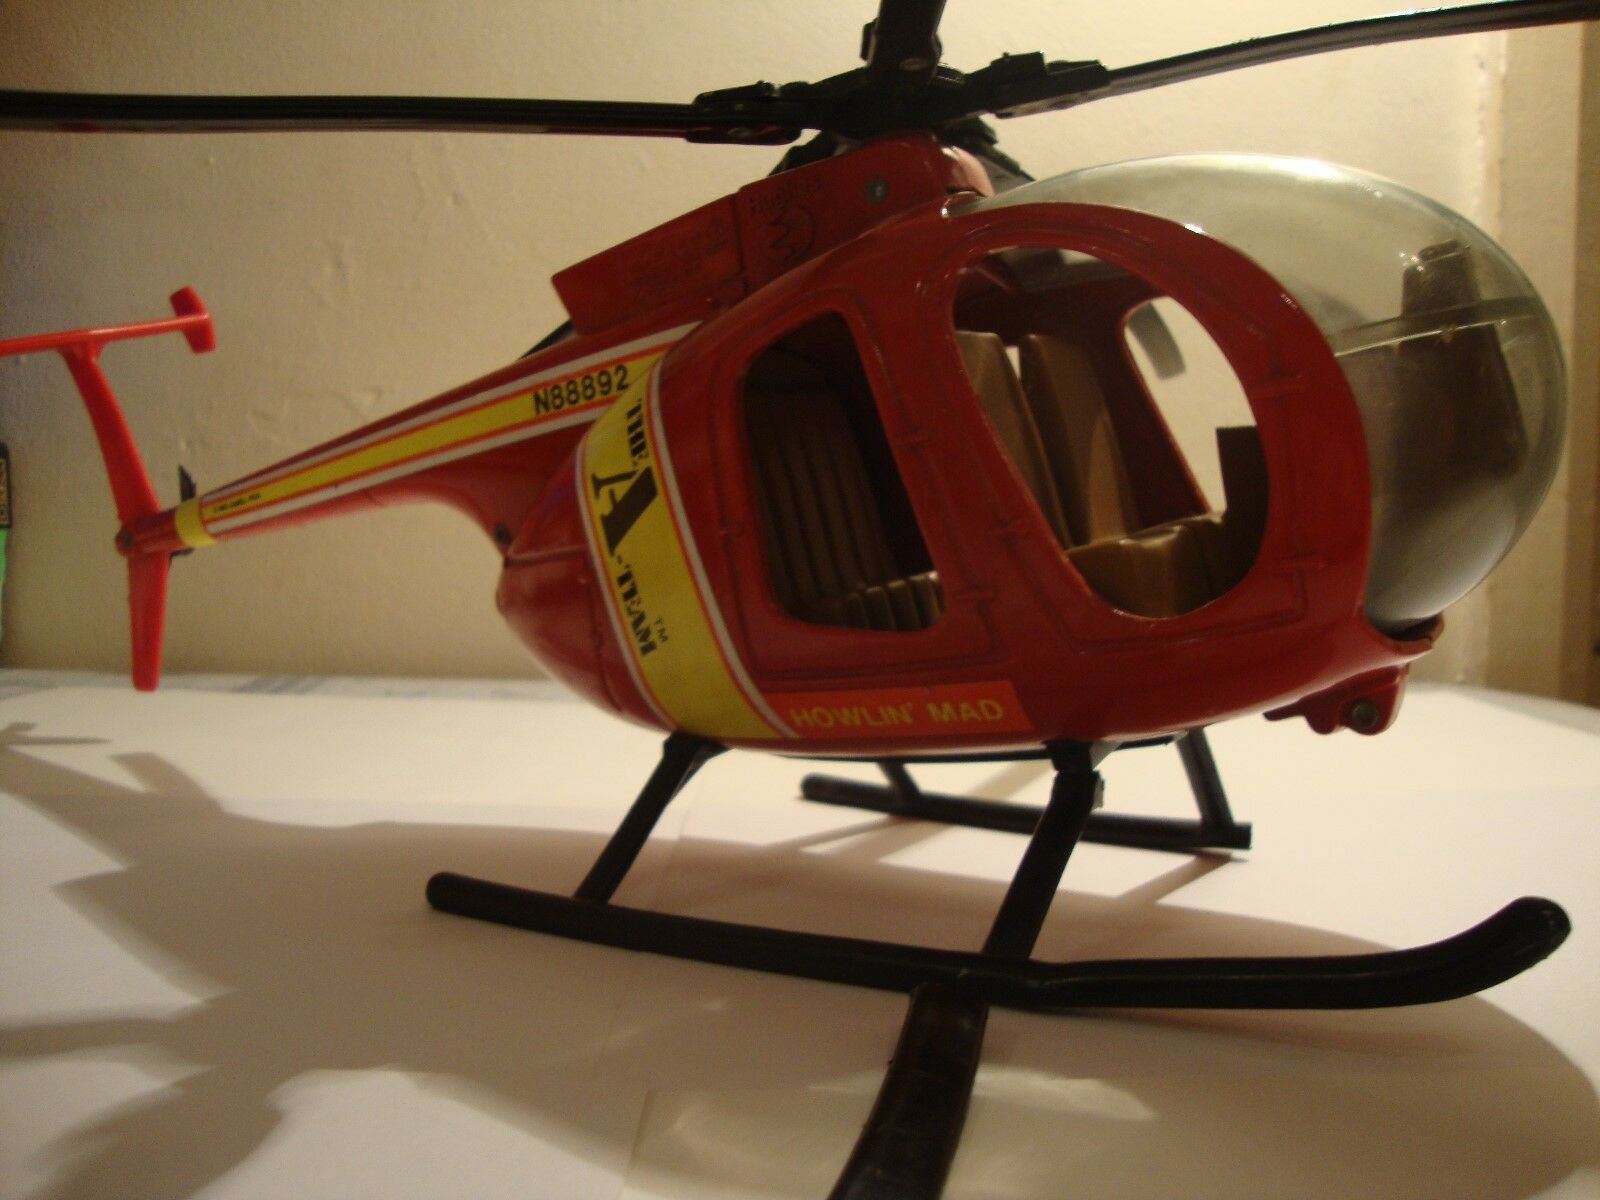 A Team Die-Cast Howling Mad Murdock Helicopter action playset spares or repairs.